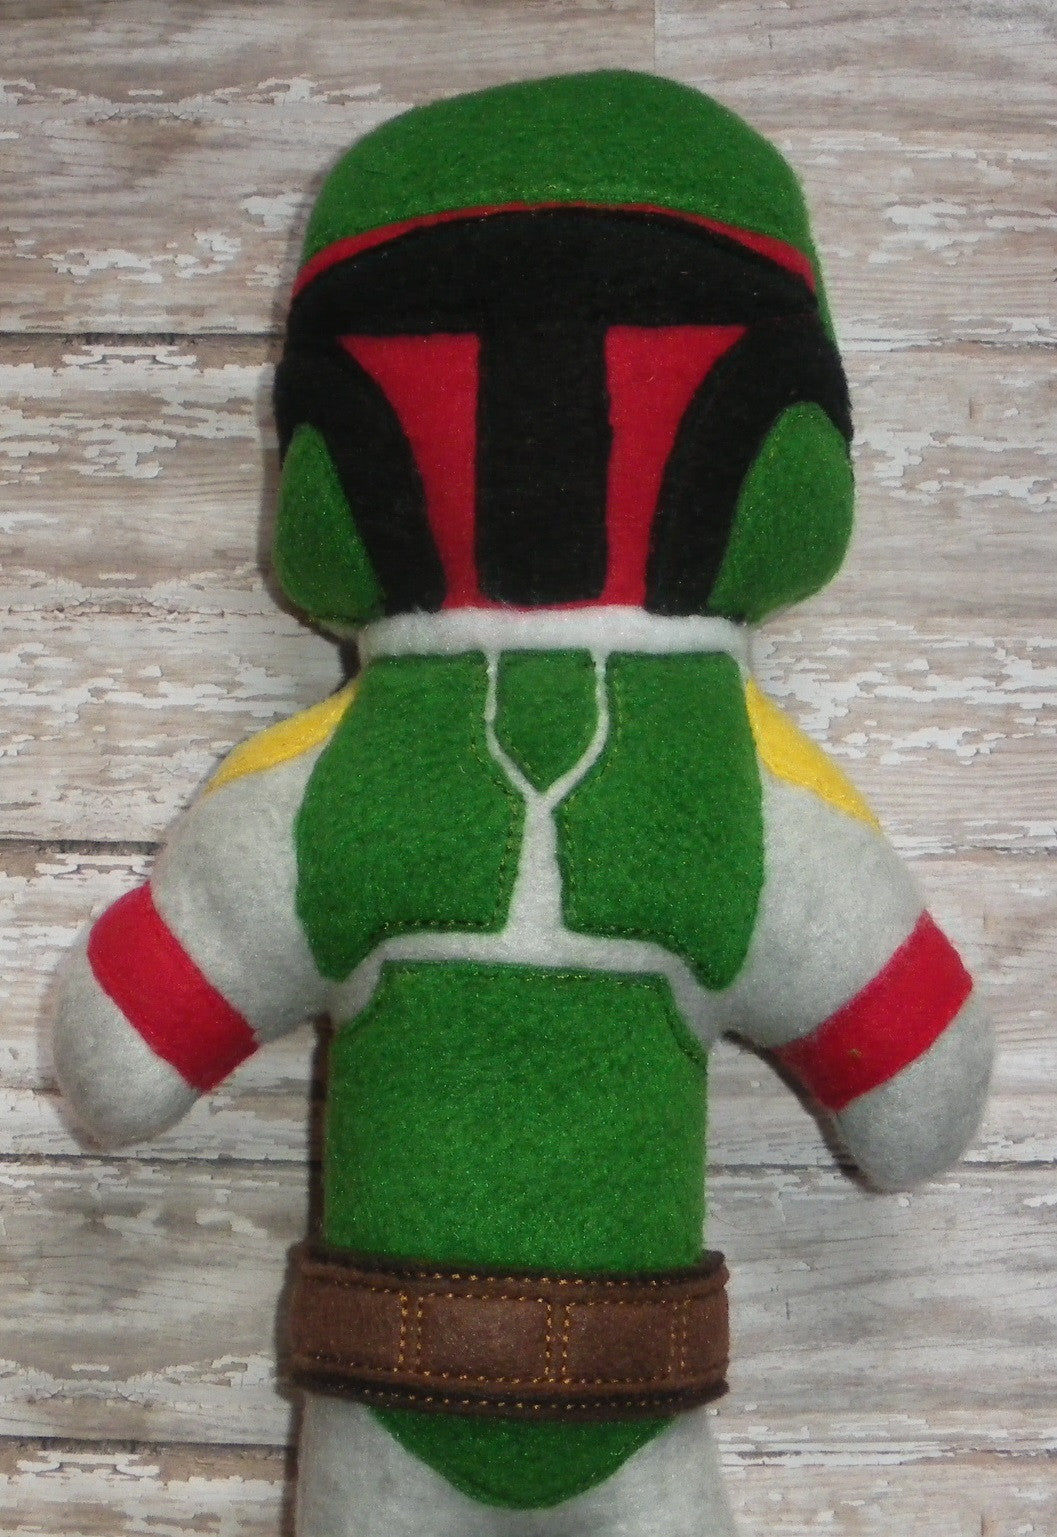 BOBA FETT DOLL PATTERN